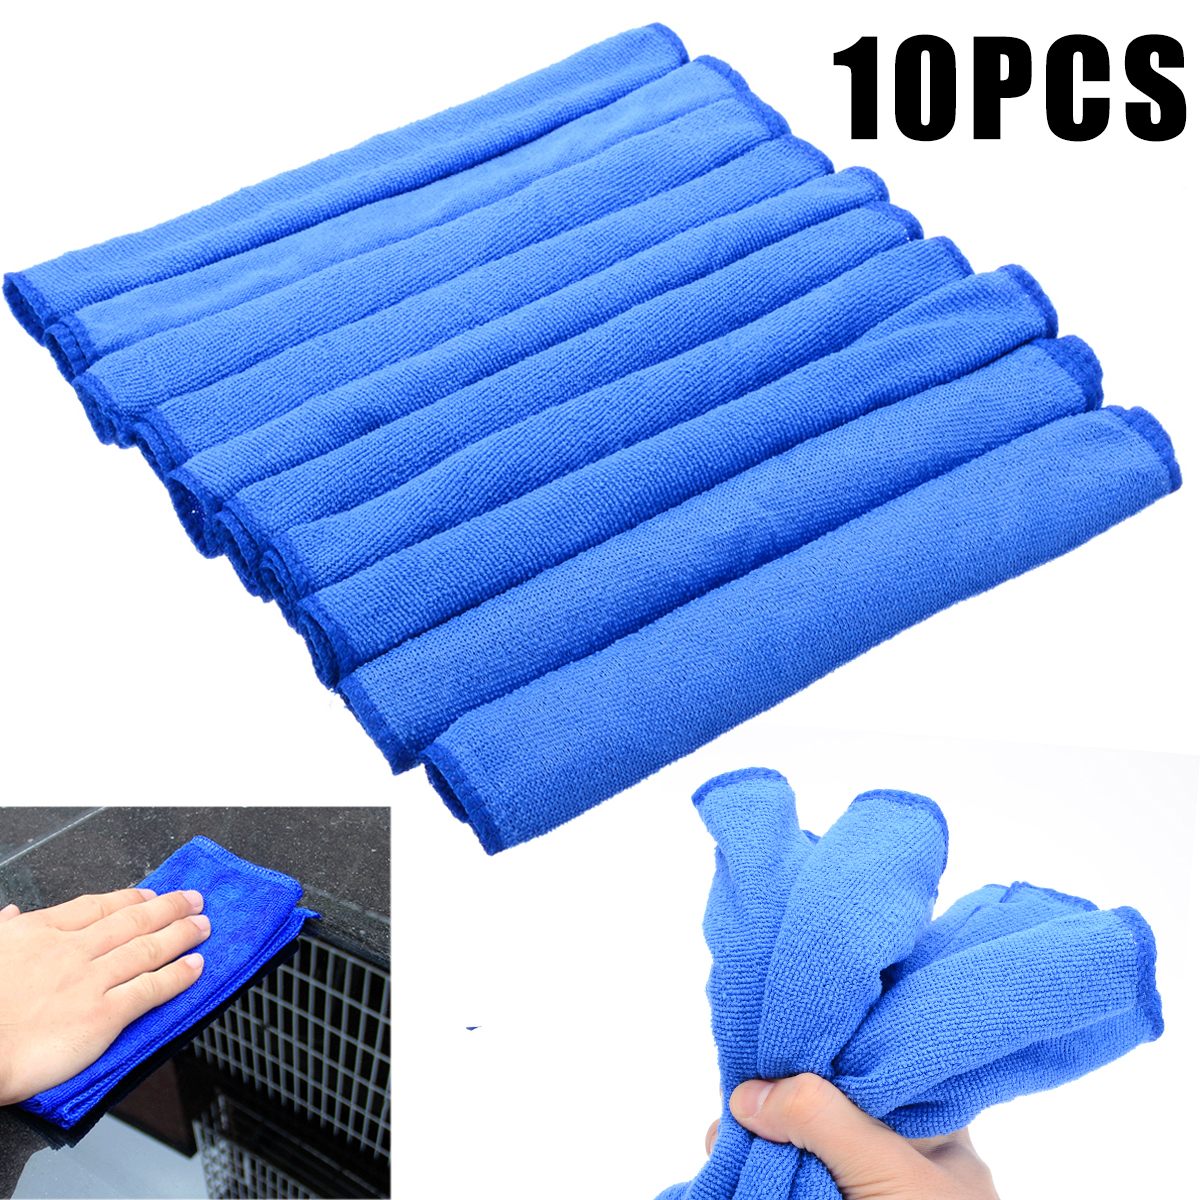 Image 2 - 10pcs Blue Microfiber Cleaning 30*30cm Auto Car Detailing Soft Microfiber Cloths Wash Towel Duster Home Cleaning Tools-in Car Washer from Automobiles & Motorcycles